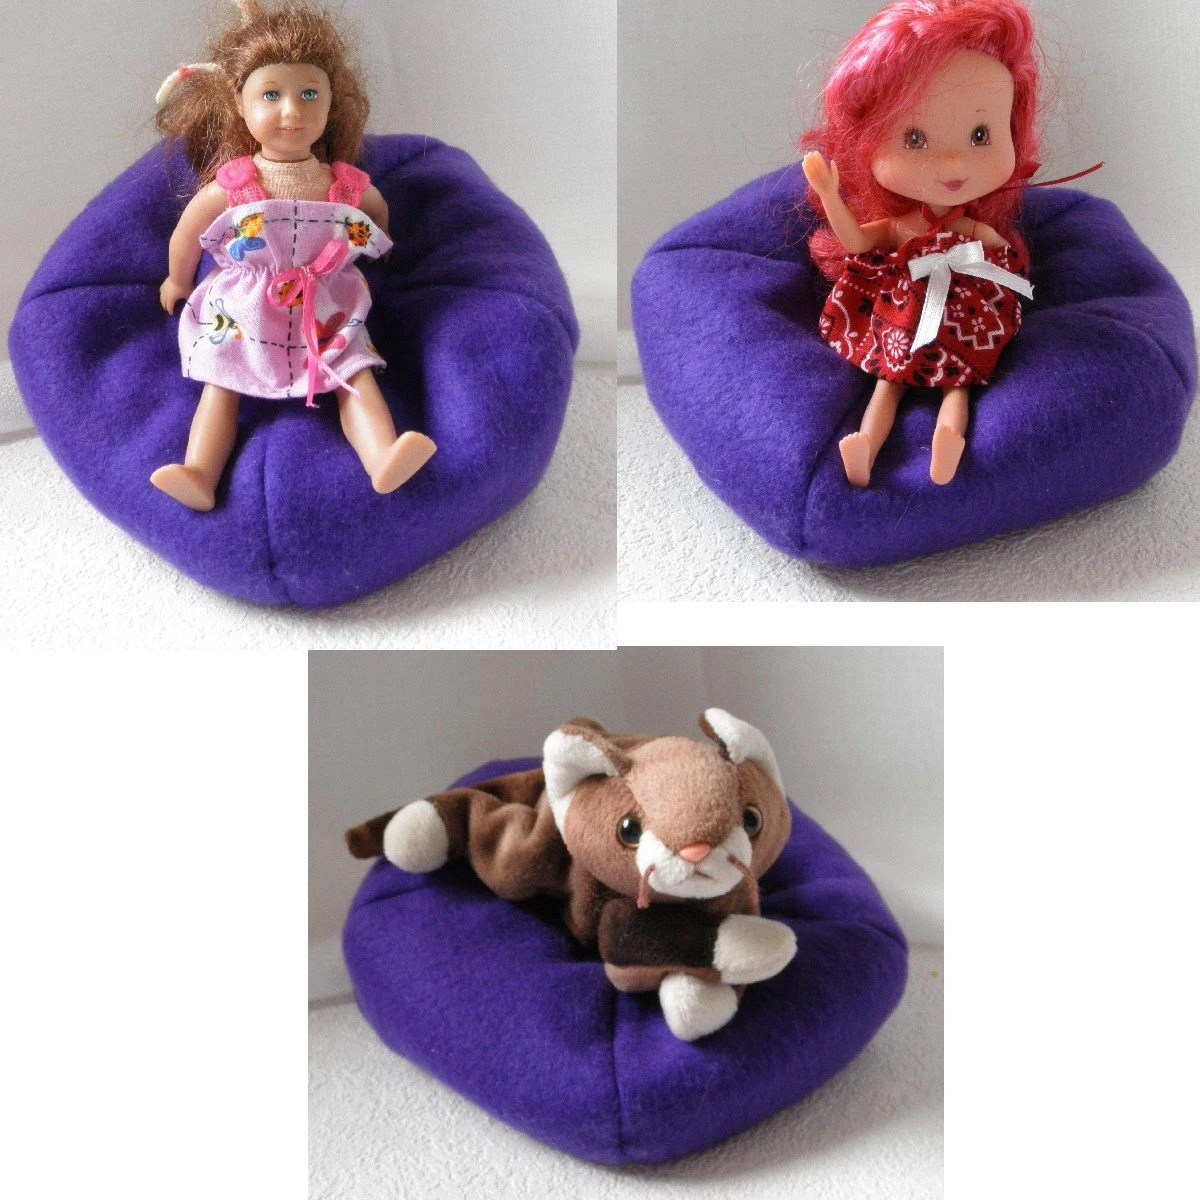 animal bean bag chair adirondack table and set blythe barbie pullip middie n stuffed animals